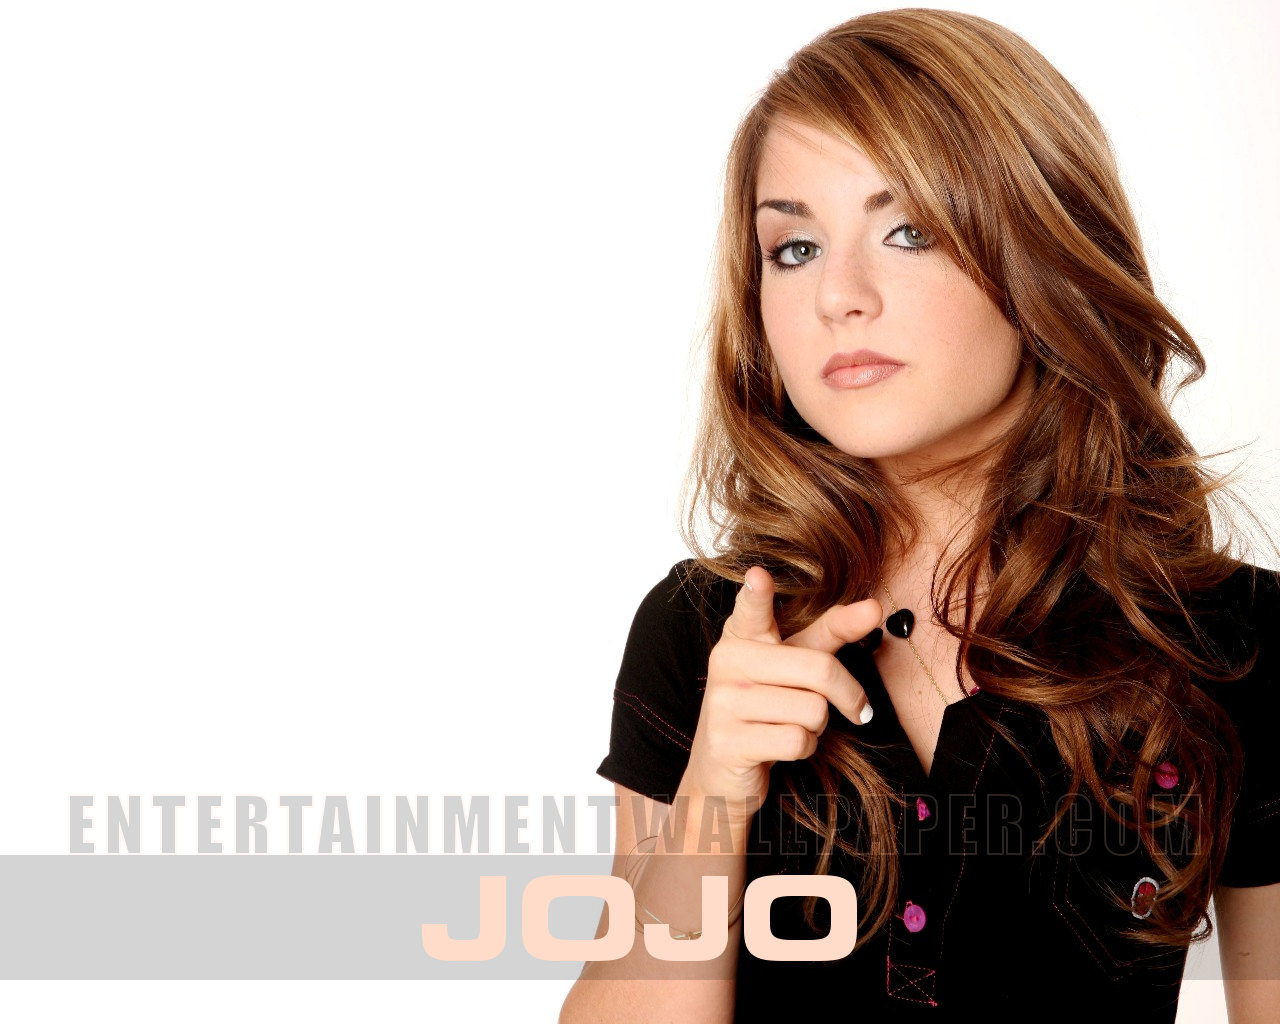 JoJo Wallpaper - Original size, download now.